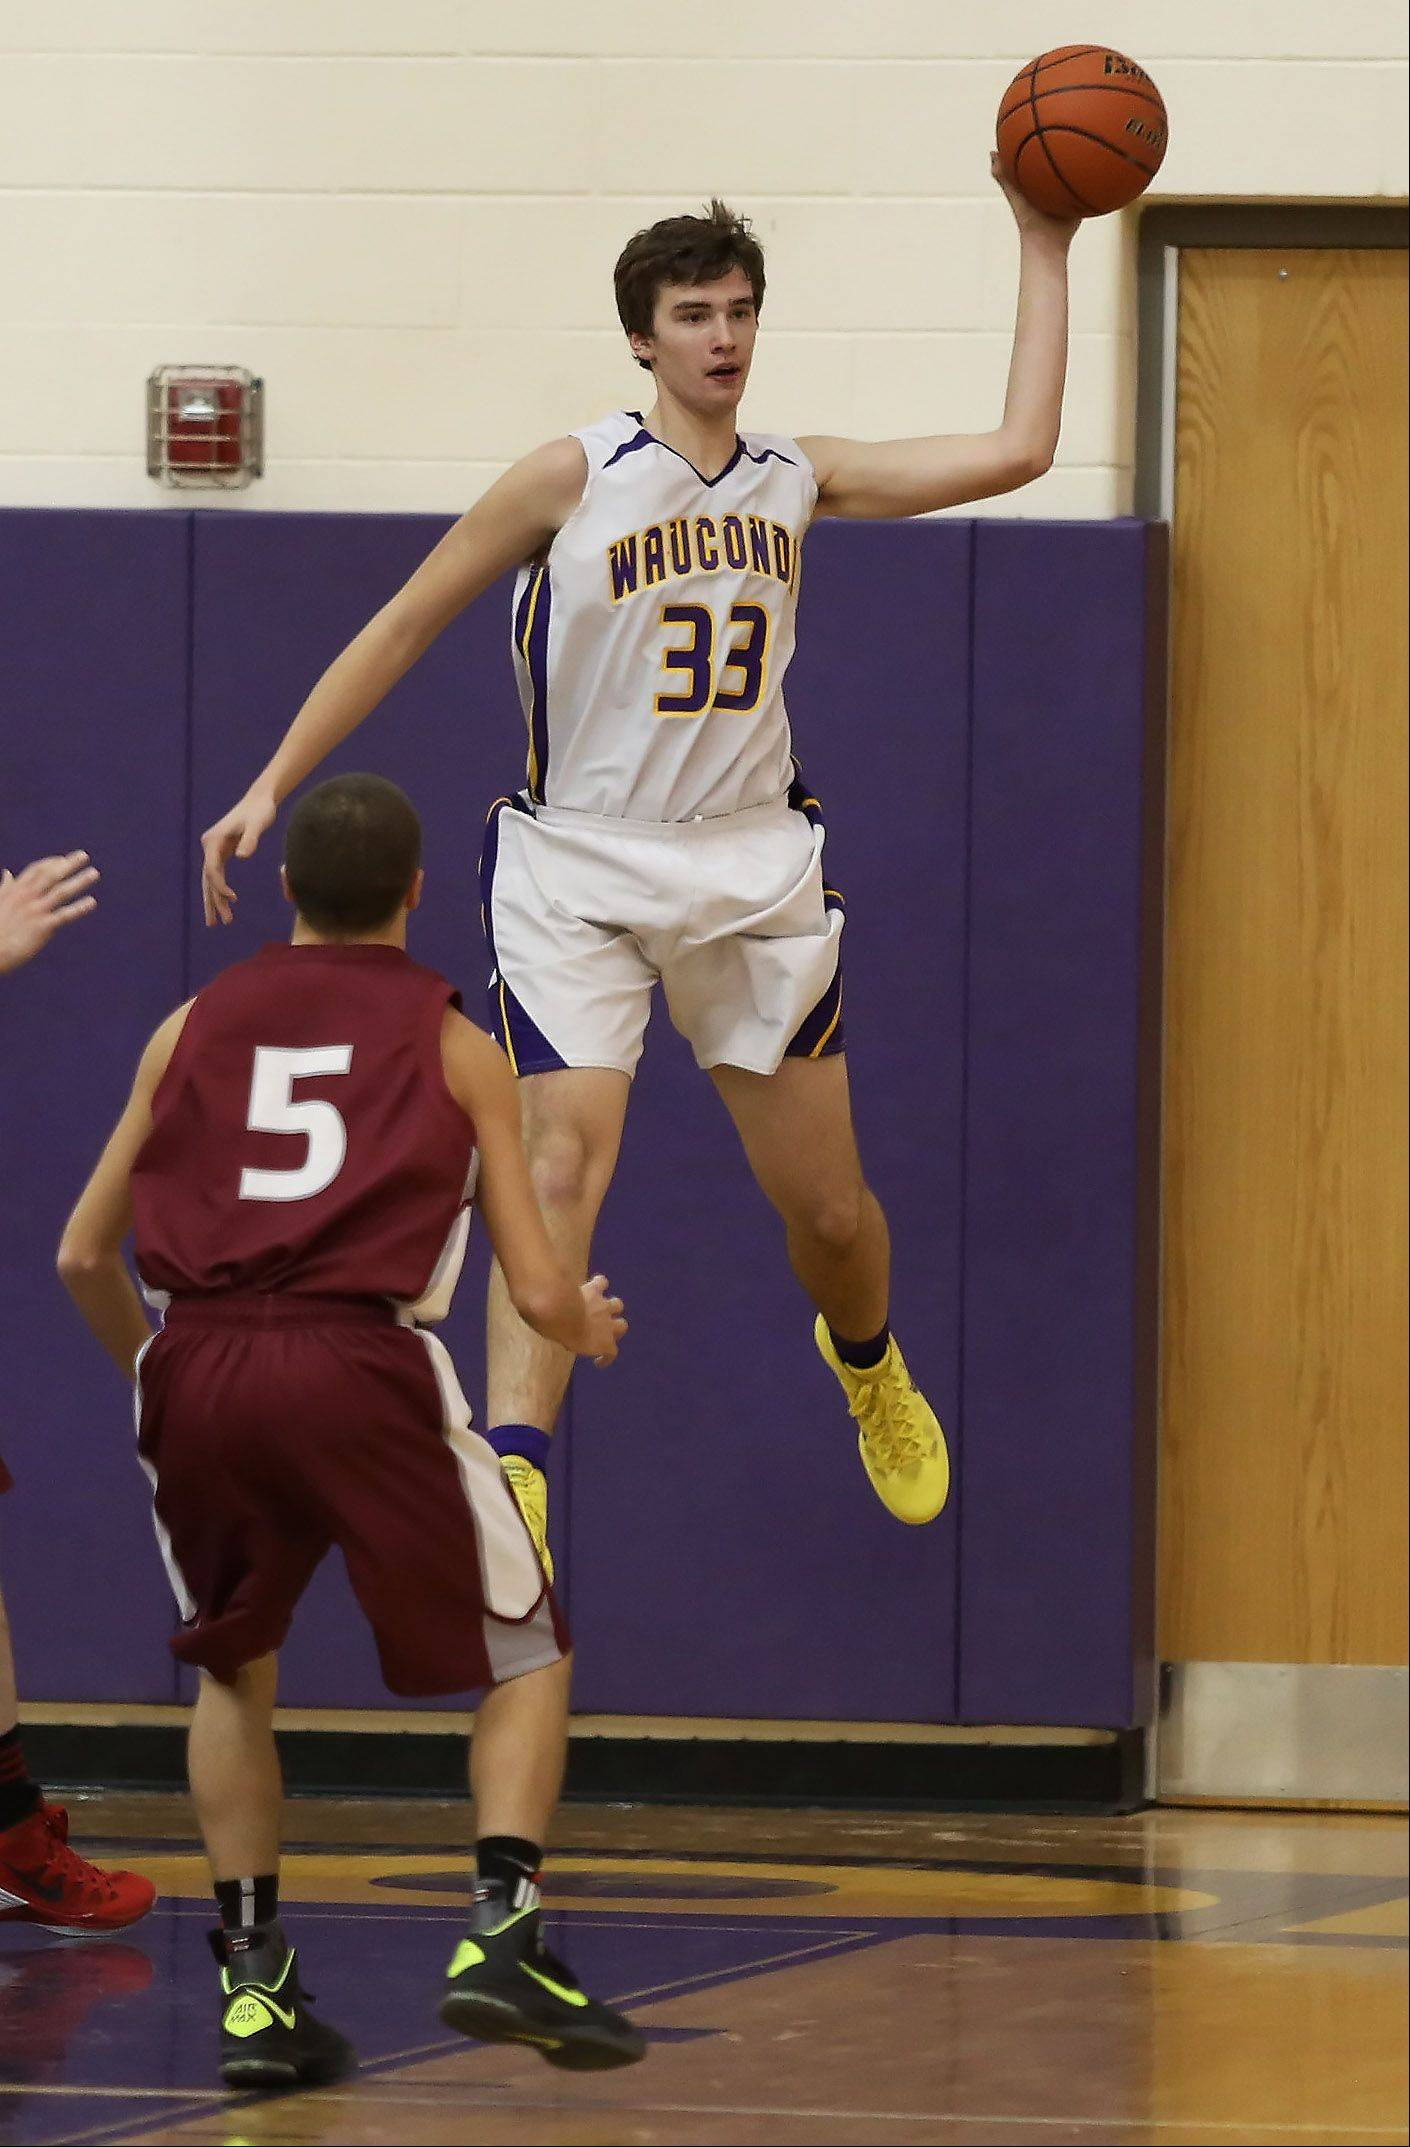 Wauconda forward Ben Carlson saves the ball as it goes out of bounds.